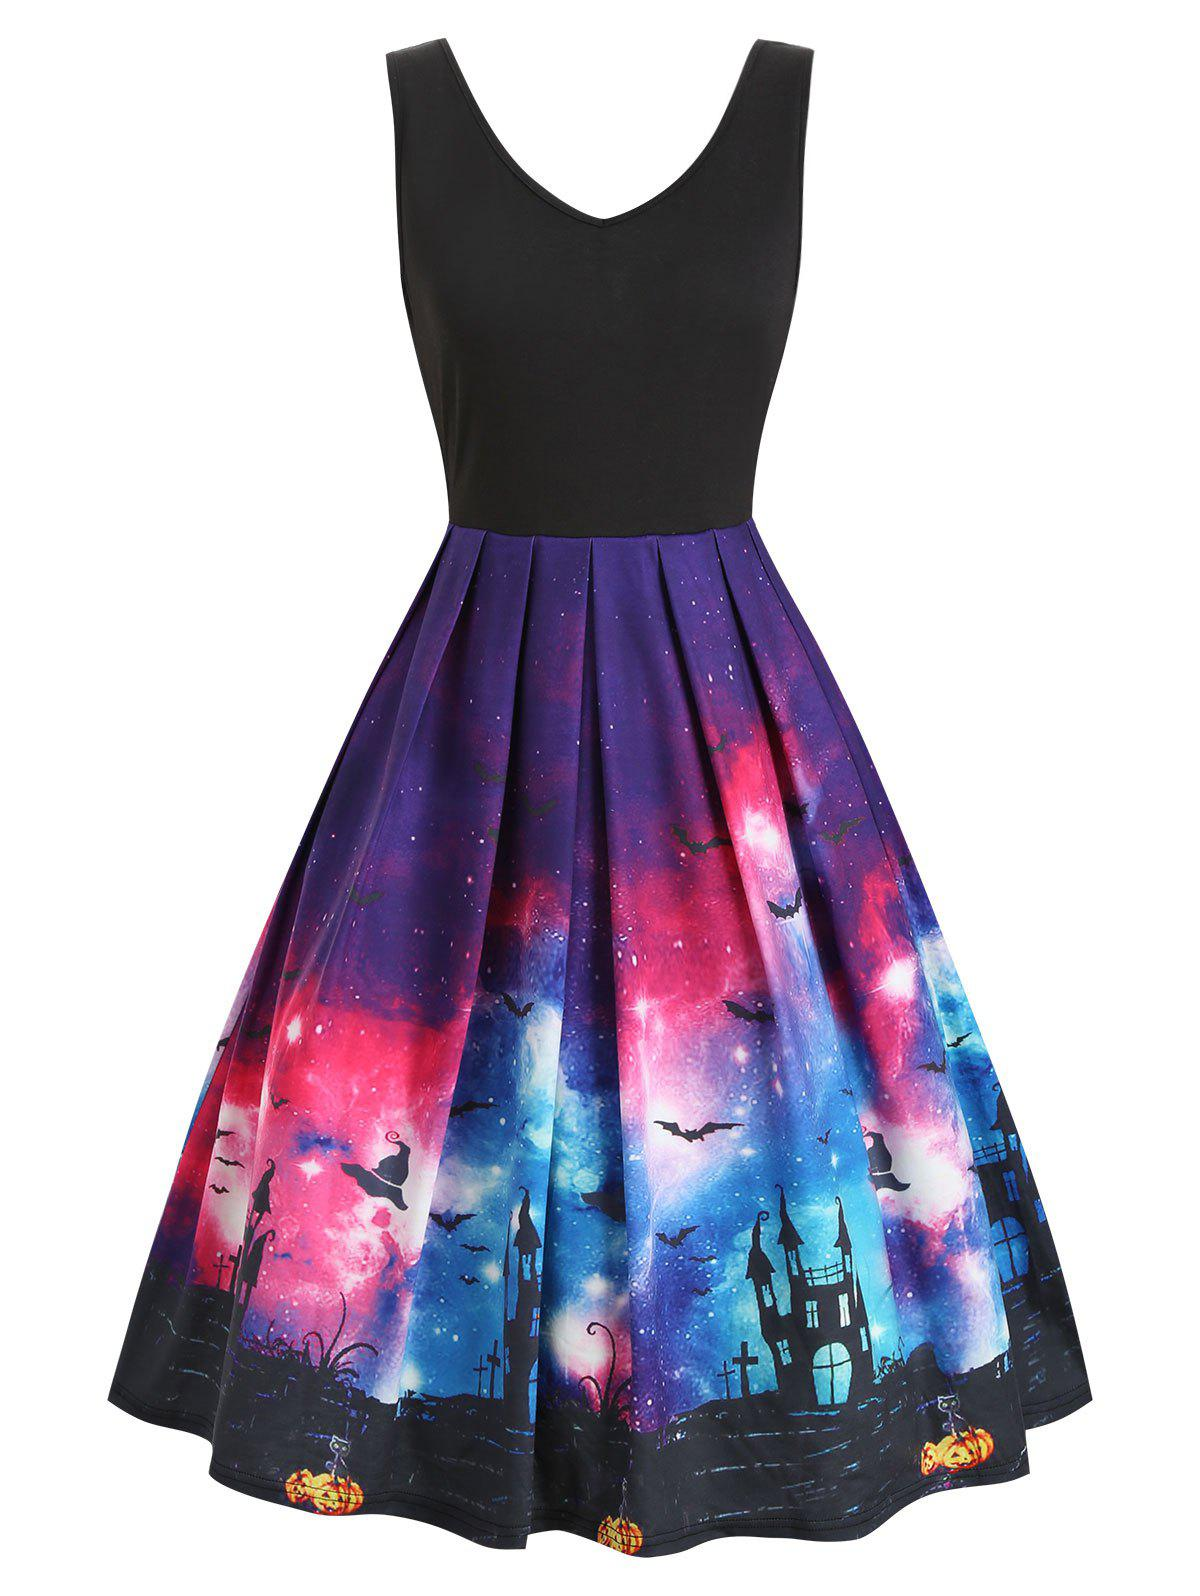 Galaxy Bat Graphic Sleeveless Halloween Dress - BLACK XL